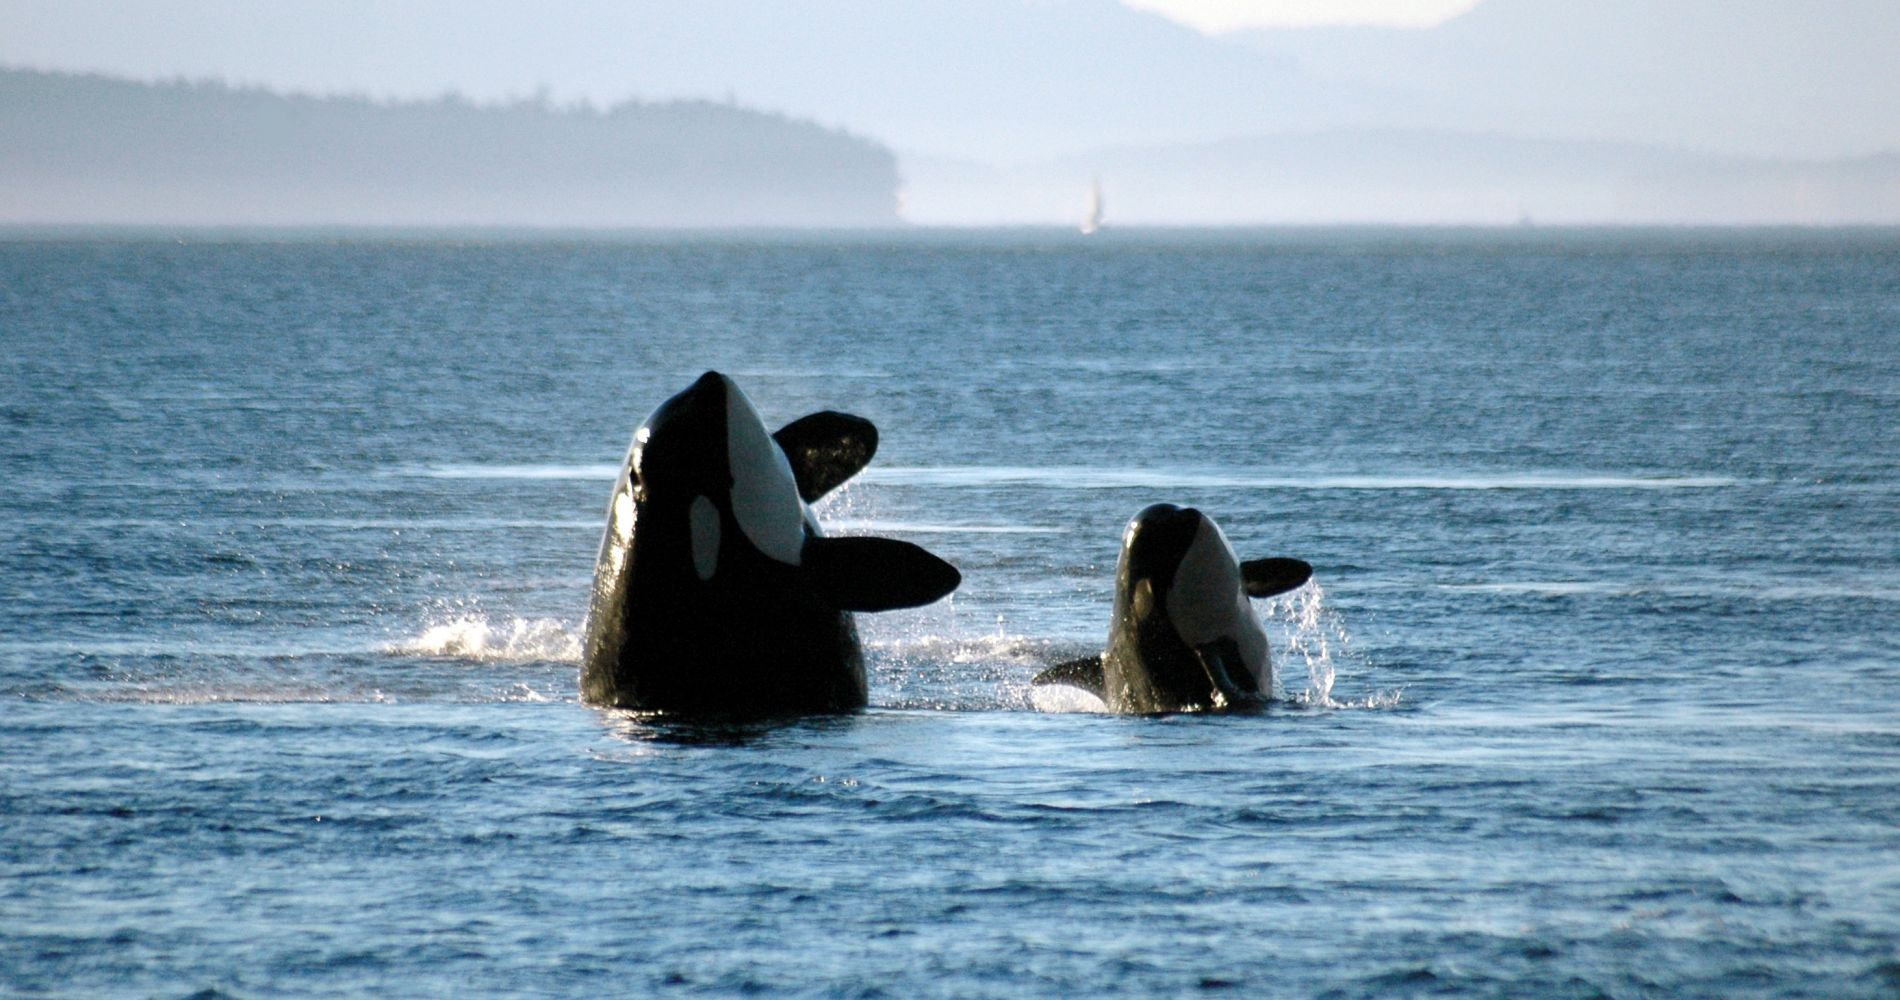 Zodiac Whale Watching Canada Experience Gifts